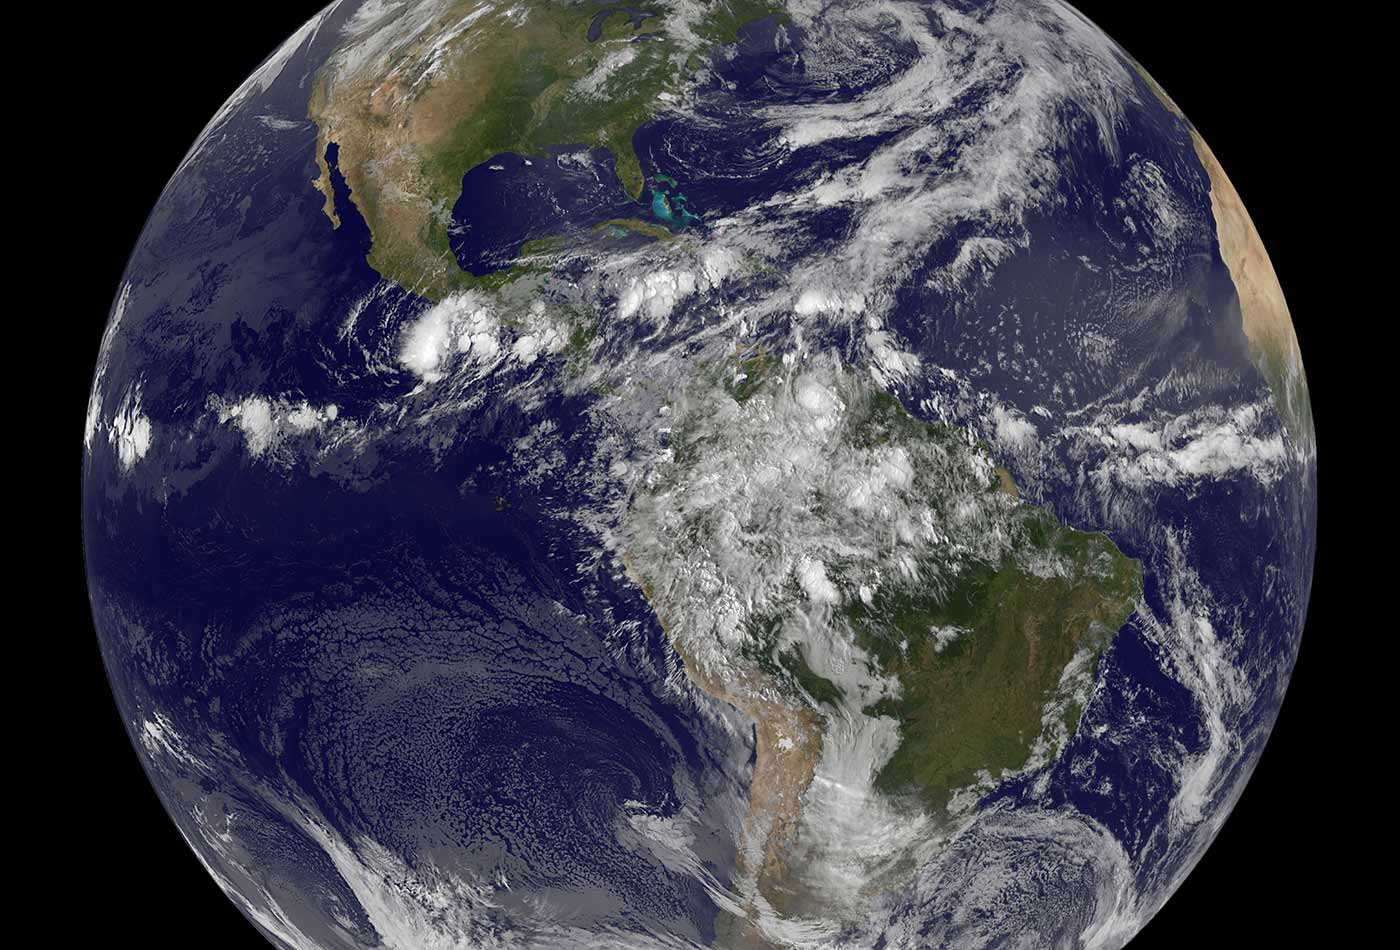 NASA GOES-13 Full Disk view of Earth.